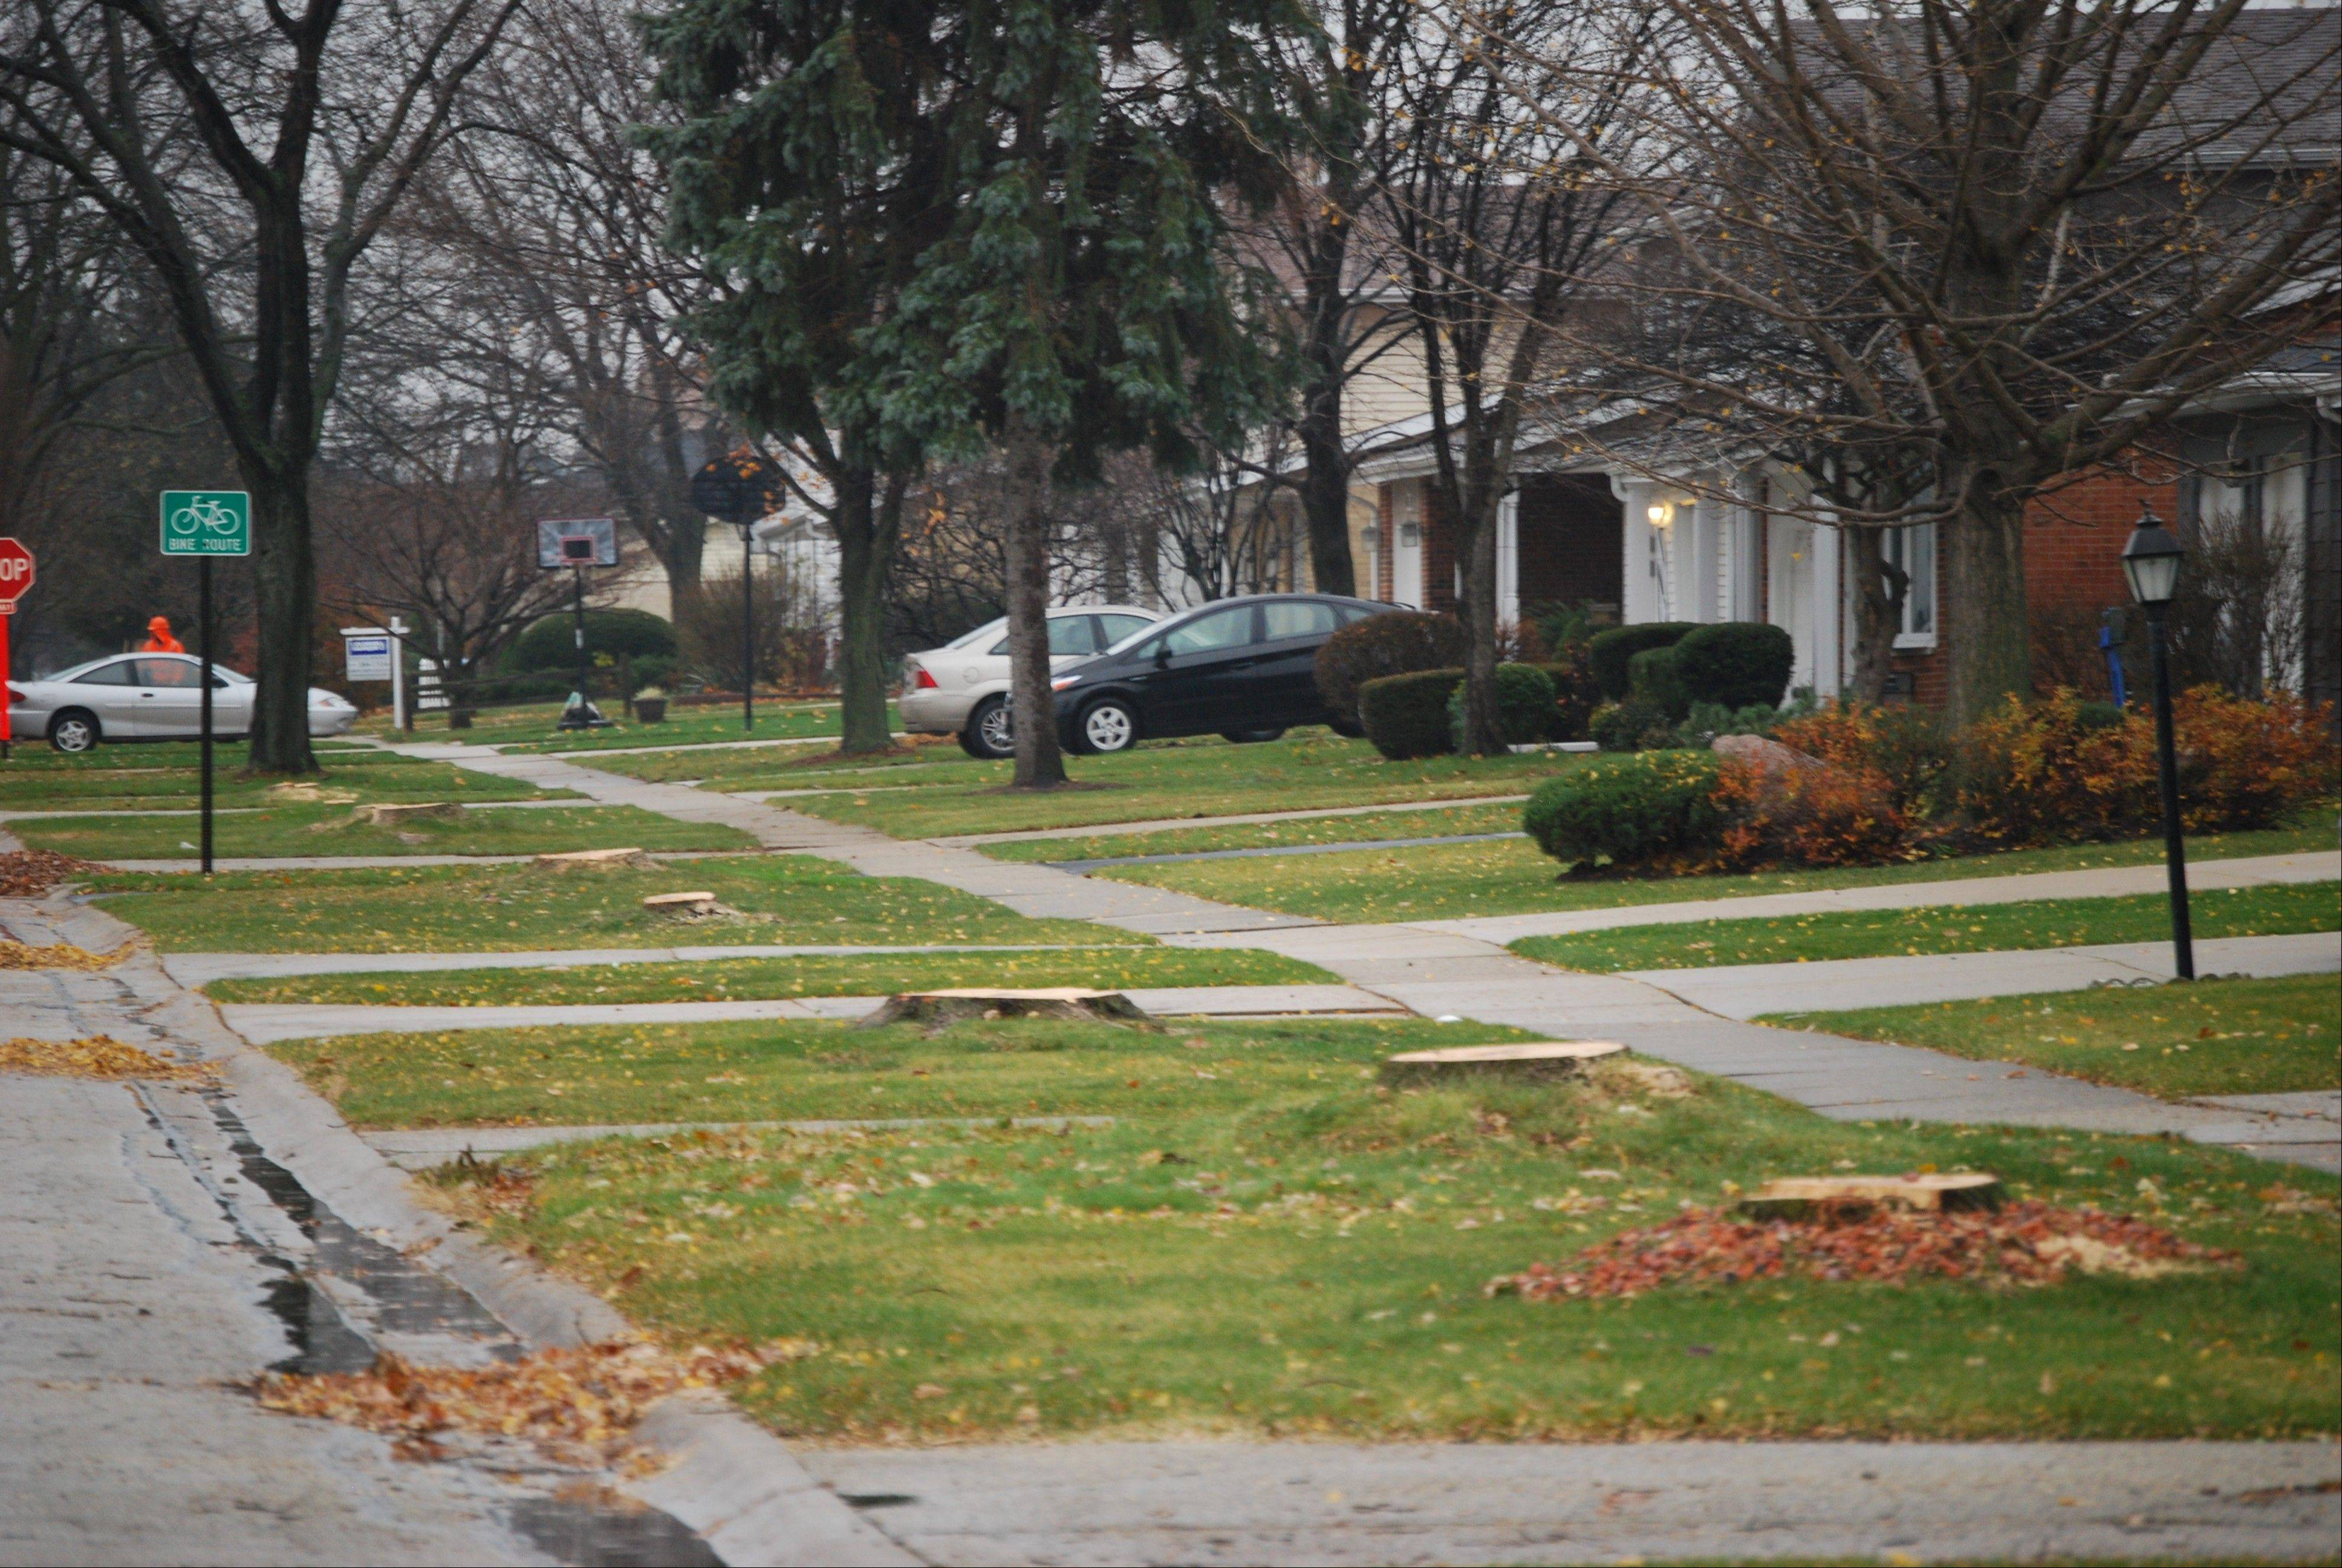 The 1800 block of Willow Lane in Mount Prospect looks barren after the parkway trees were removed.